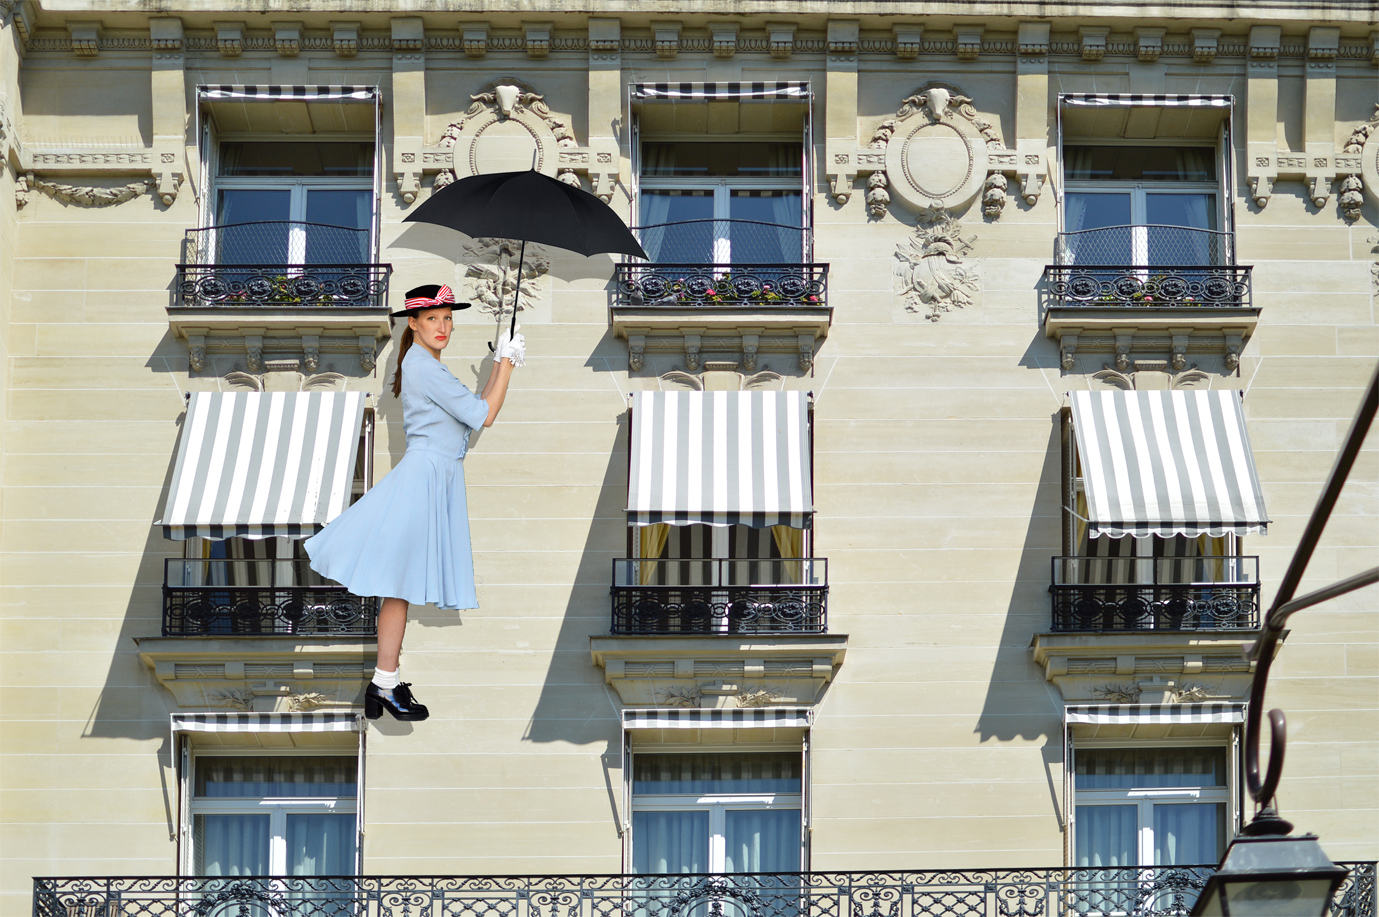 marry poppins style